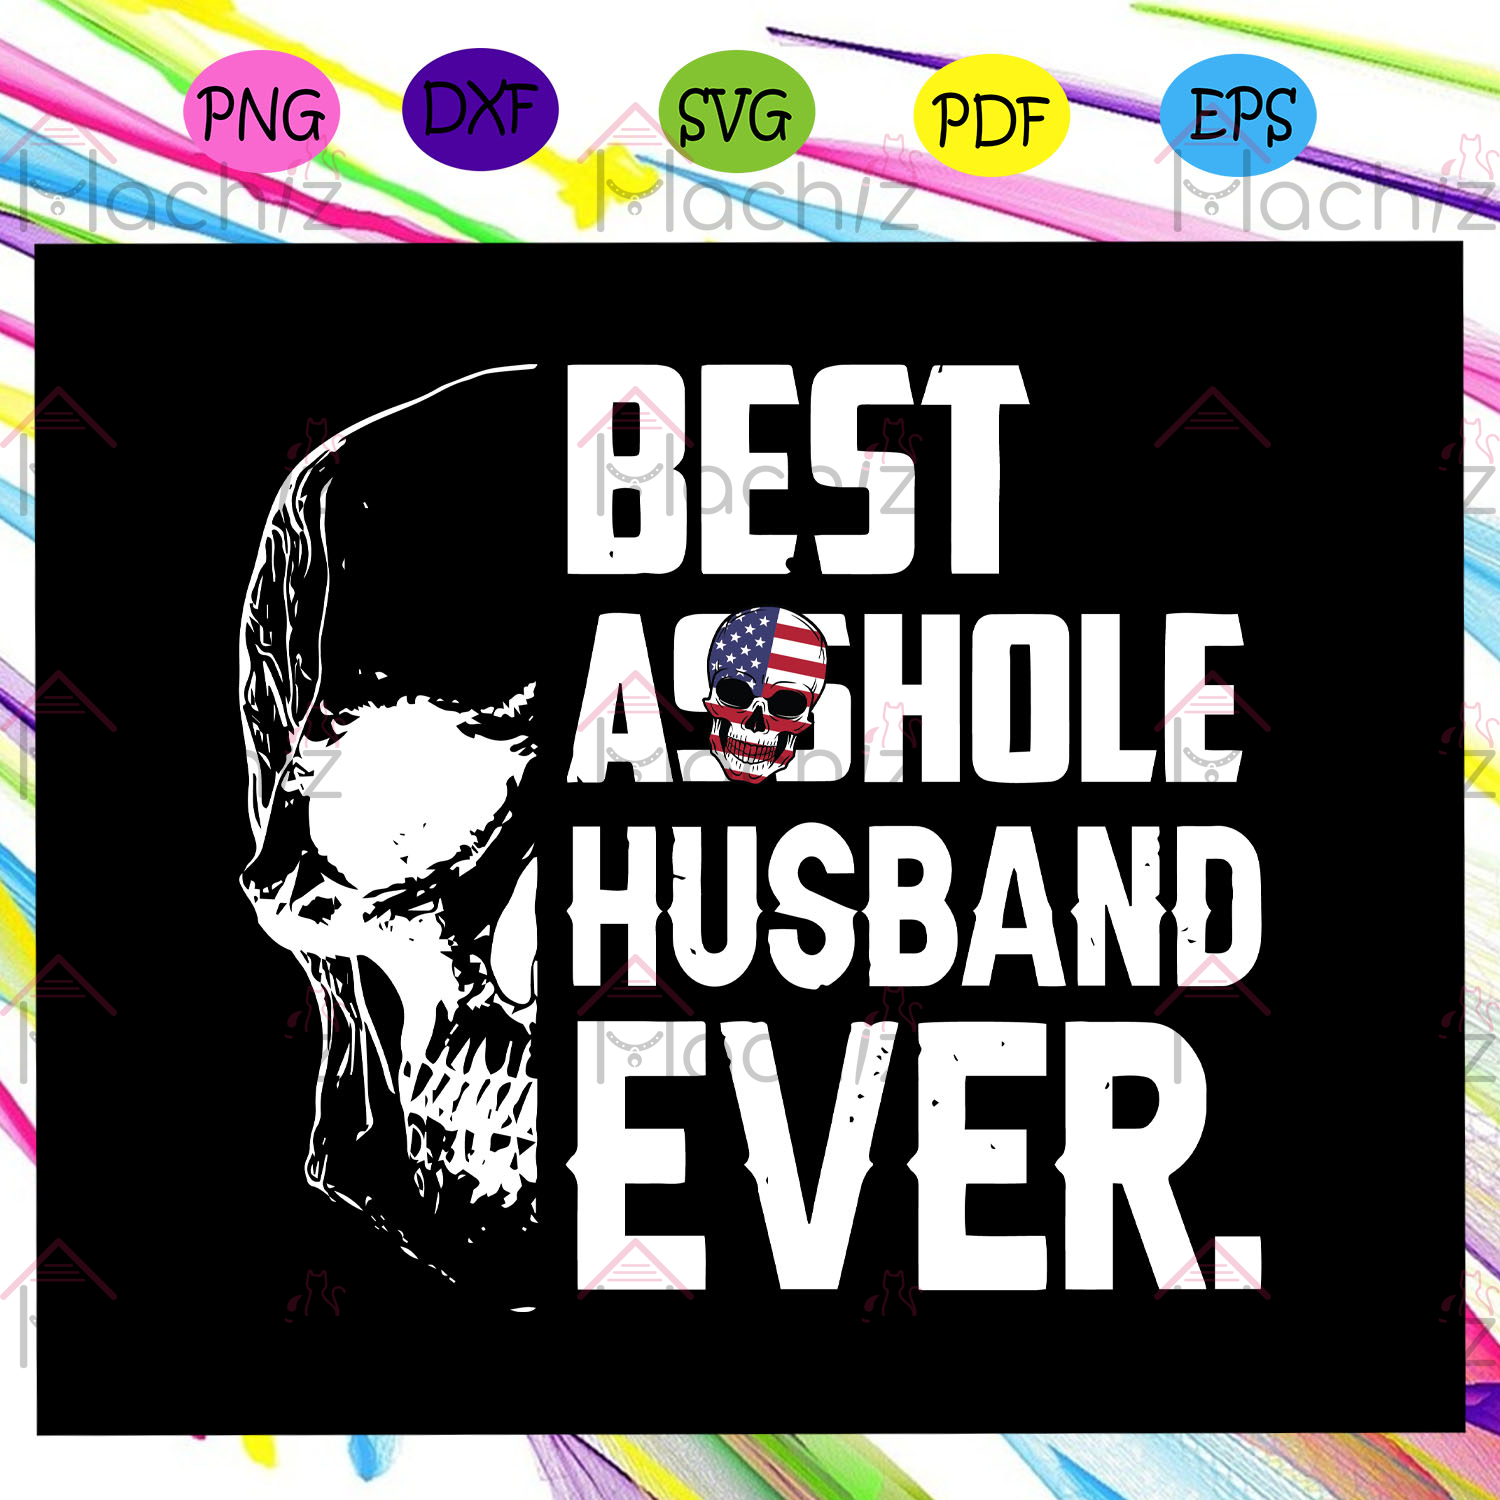 Best Asshole Husband Ever Svg, Happy Fathers Day Svg, Fathers Day Svg, Father Svg, Asshole Svg, Fathers Day Gift, Gift For Papa, Fathers Day Lover, Daughter Svg, Husband Gift, Files For Silhouette, Files For Cricut, SVG, DXF, EPS, PNG, Instant Download